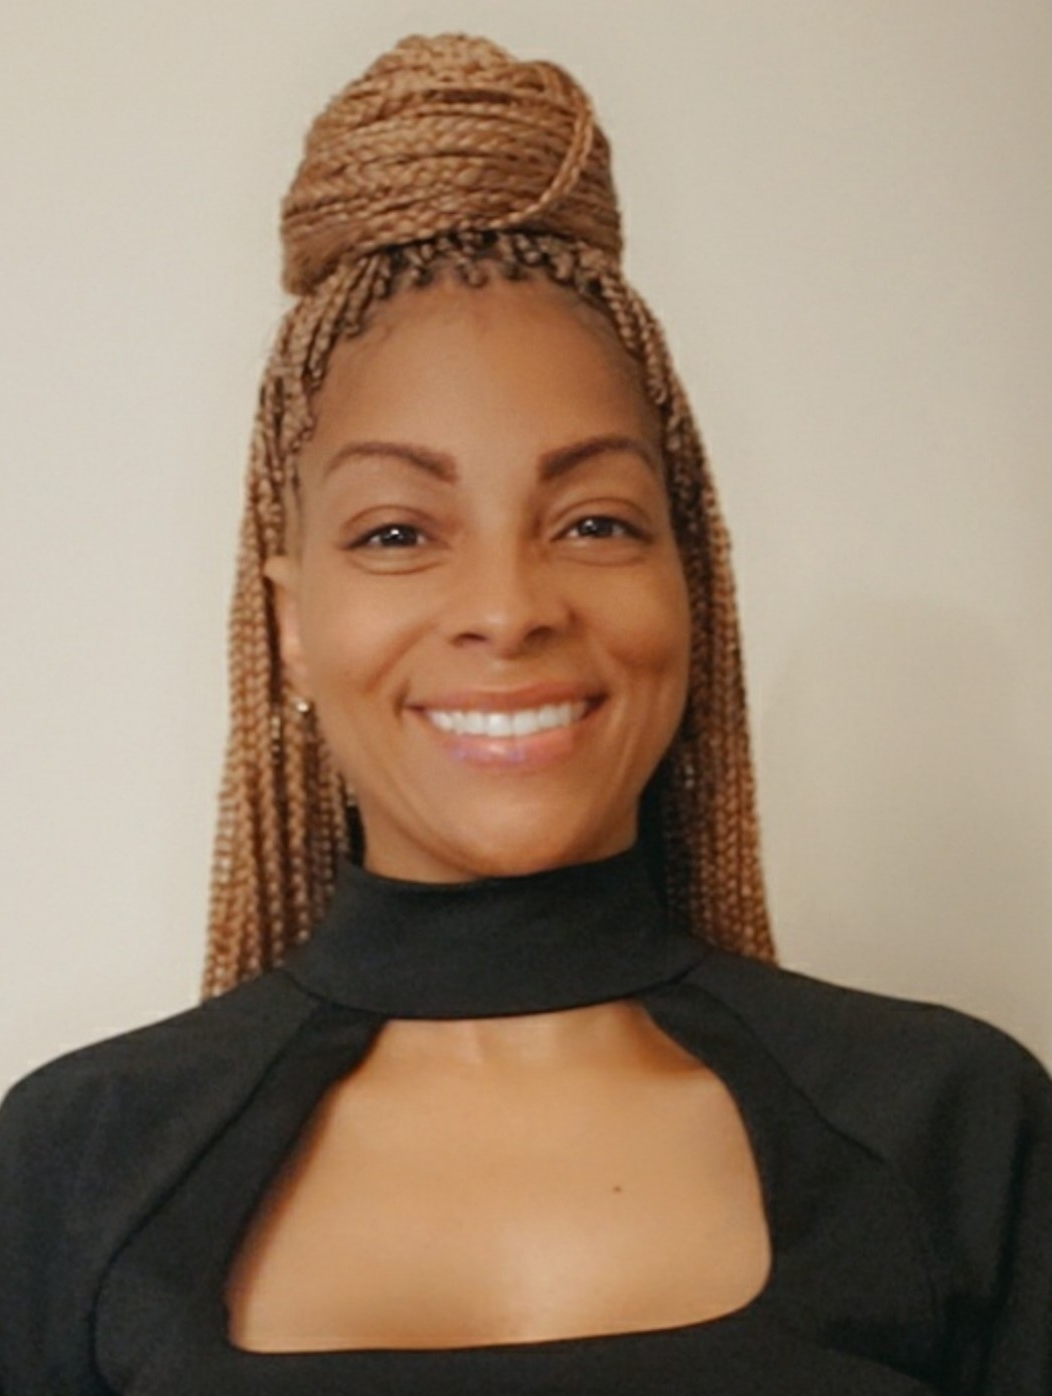 Beatrice K. Harvey Recognized as a Woman of the Month for October 2020 by P.O.W.E.R. (Professional Organization of Women of Excellence Recognized)